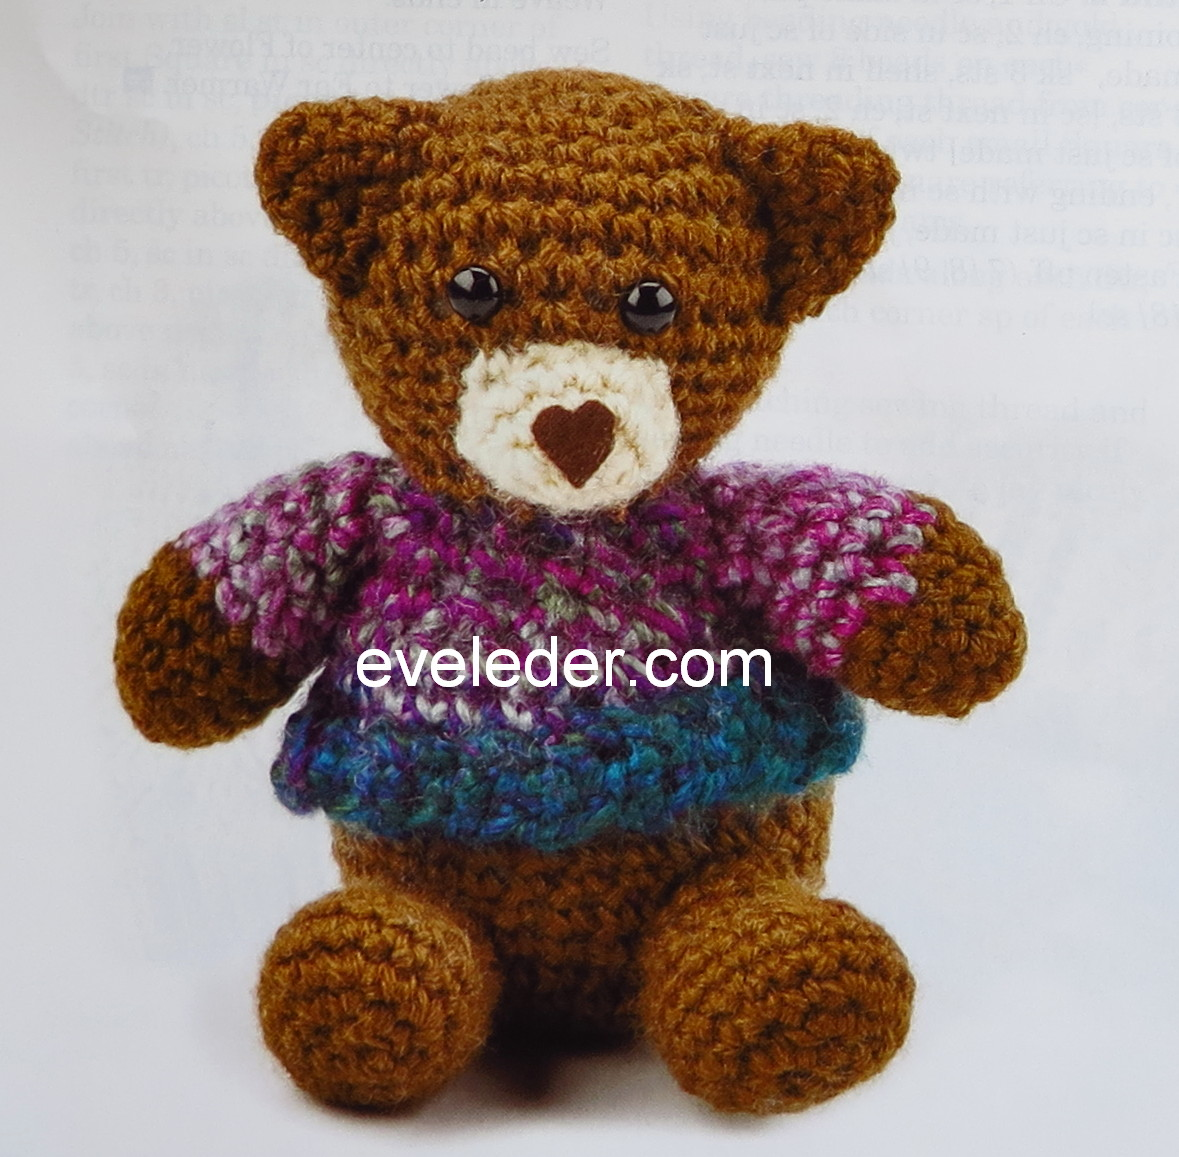 Teddy Bear Crochet Patterns With Clothes | The WHOot | 1157x1179